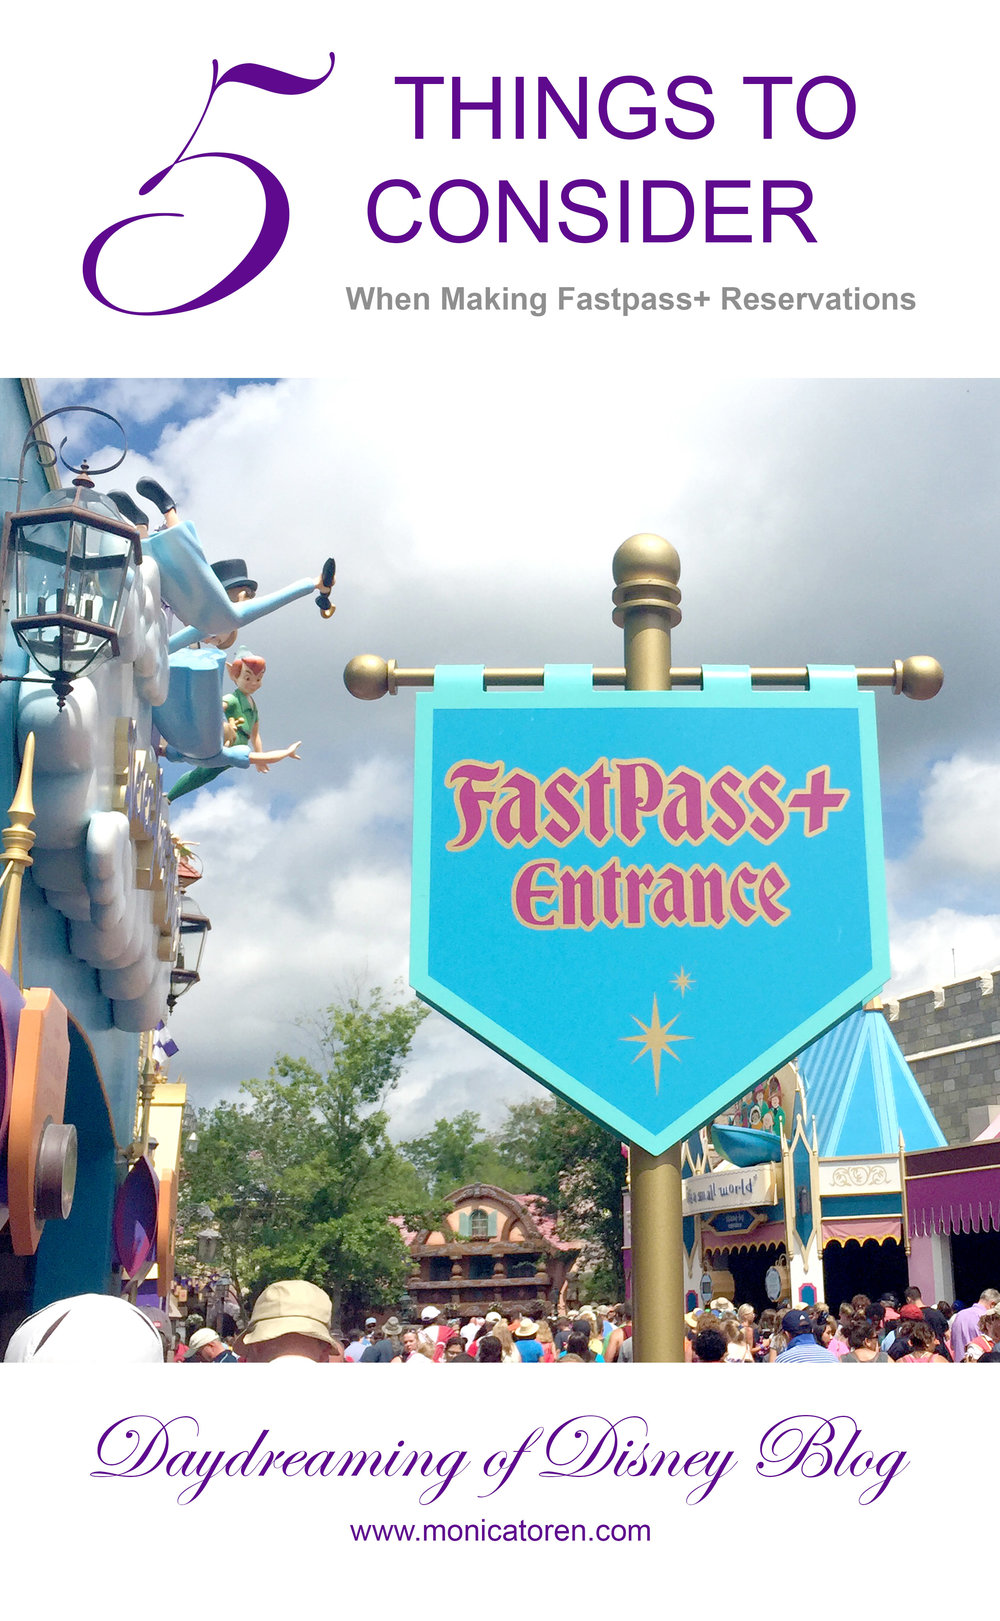 Daydreaming of Disney Blog - Five Things to Consider When Making Fastpass+ Reservations